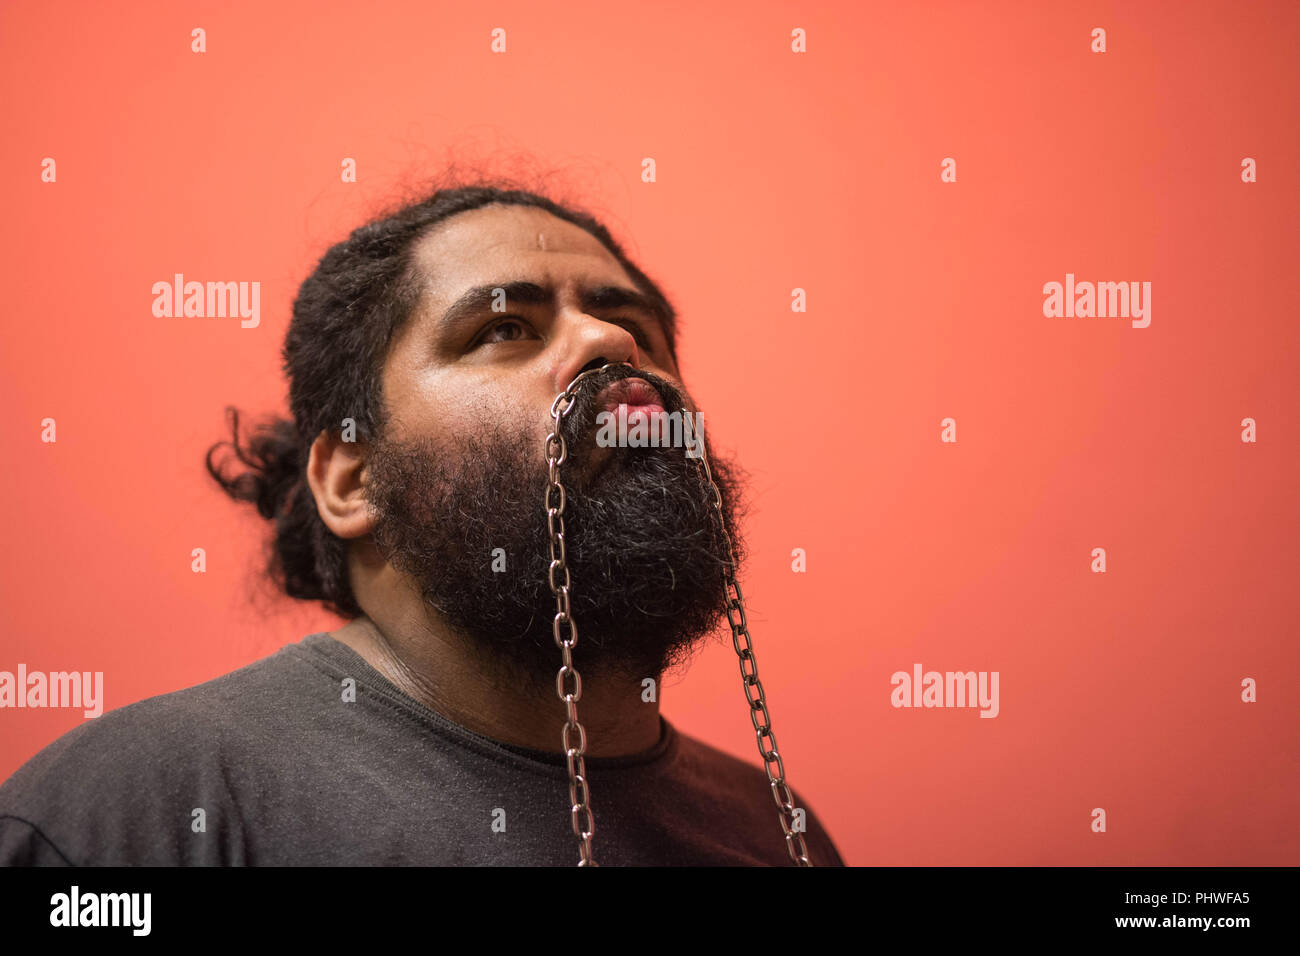 Bearded man holding up a chain in his face Stock Photo